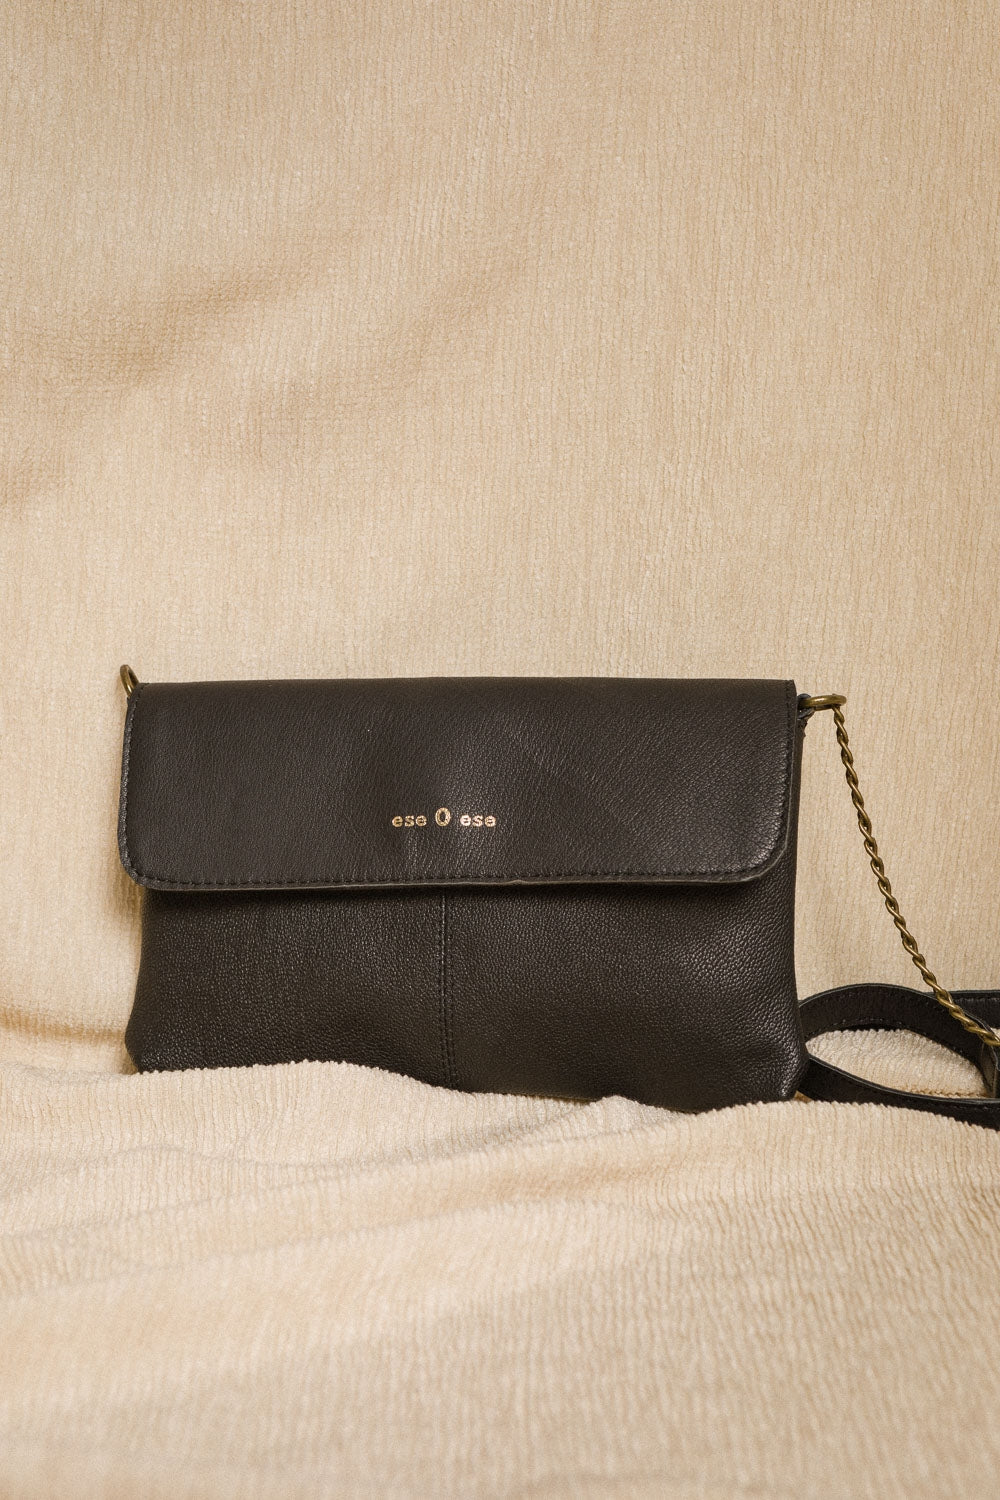 ese O ese Combined chain small leather crossbody bag in Black - CW CW